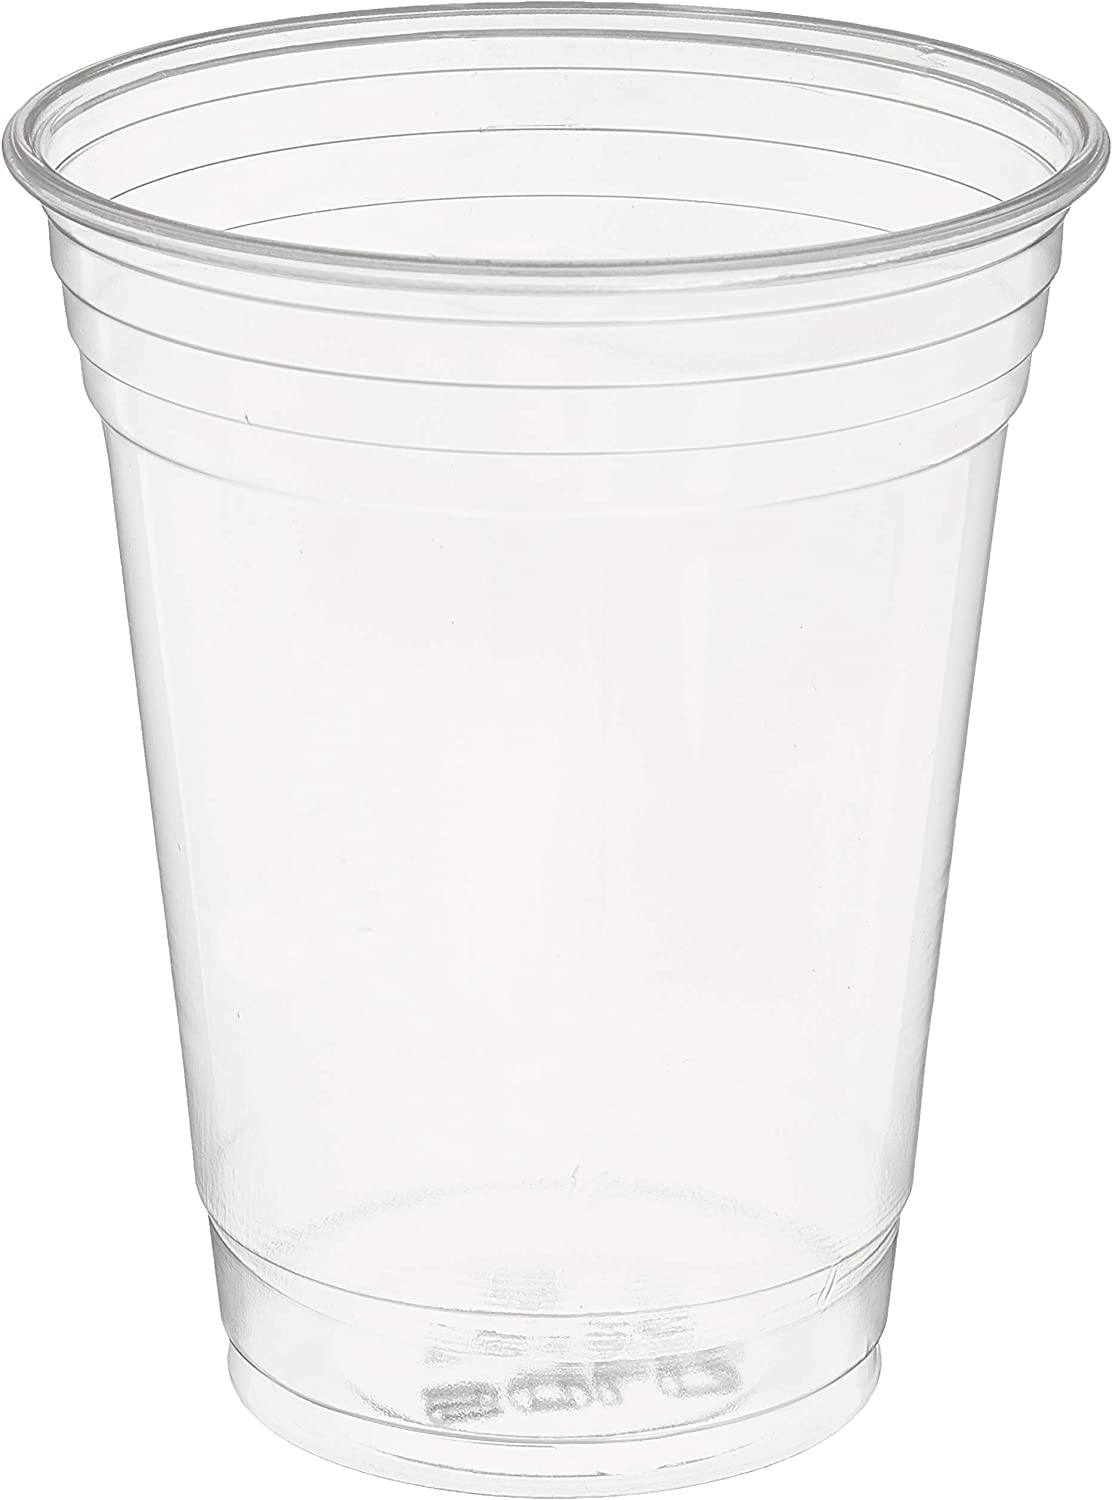 SOLO Cup Company TP16D-1 Solo TP16D 16 oz Plastic Ultra Clear Cold Drink Cup (1 Pack of 50), 1 Sleeve of 50